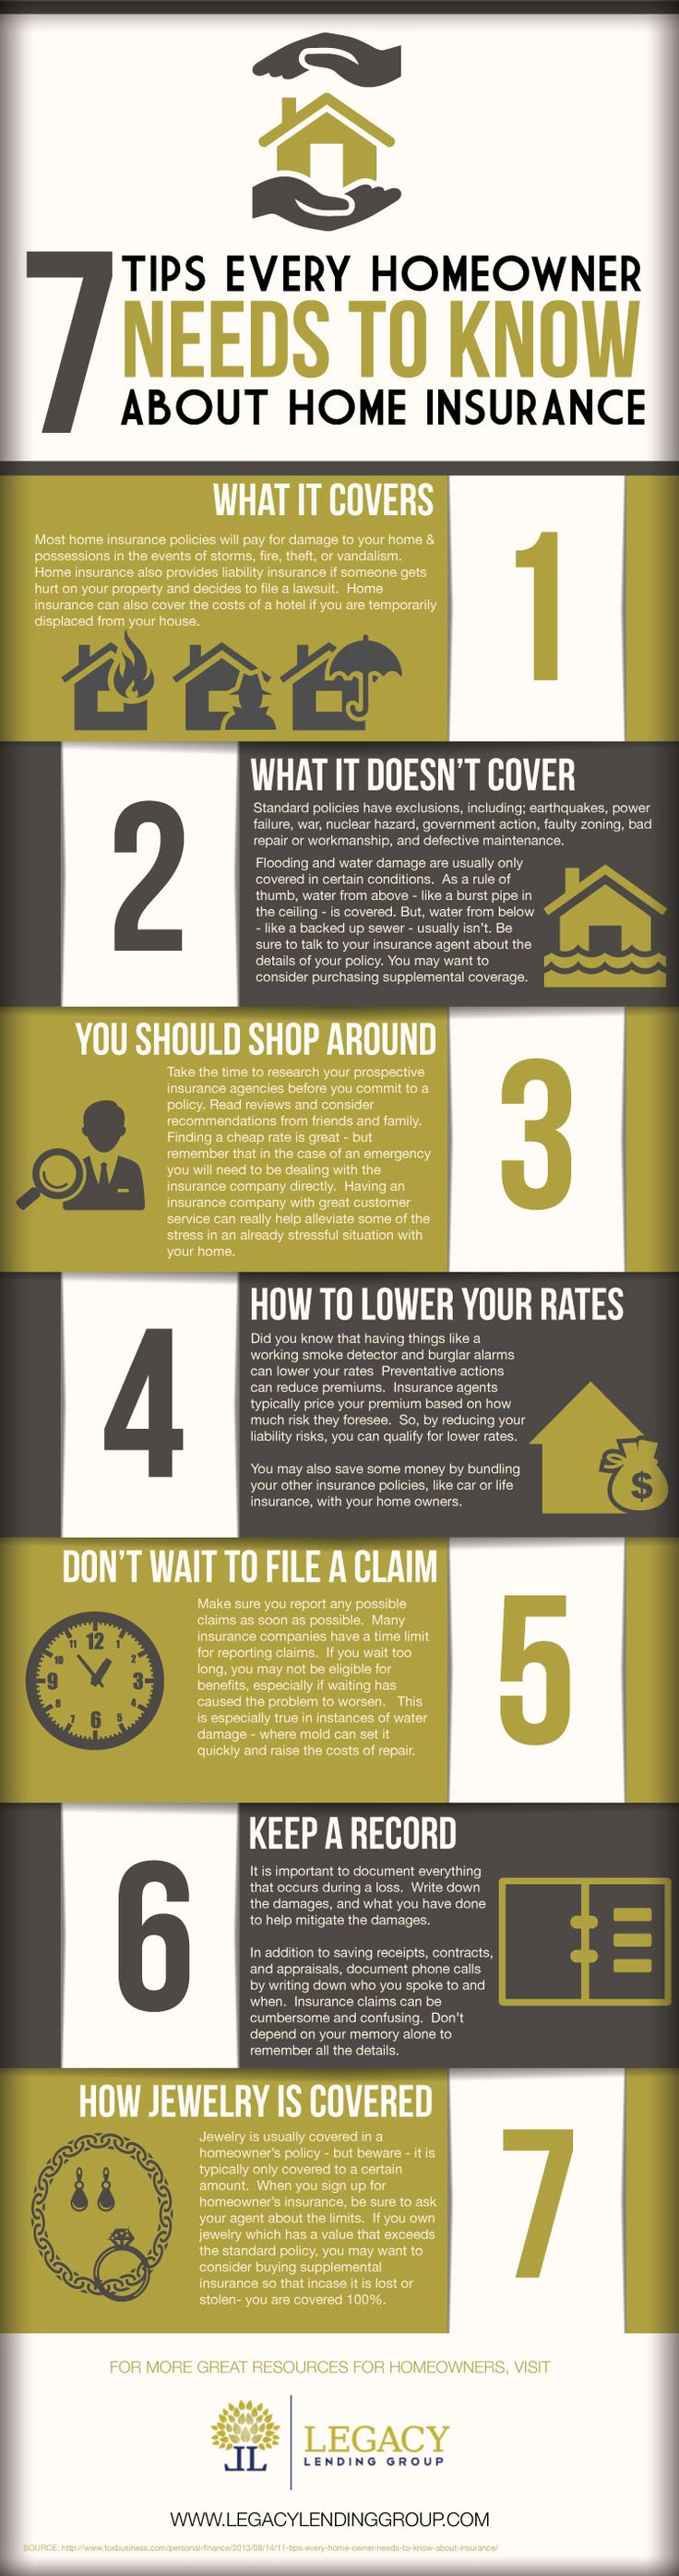 Homeowner Tips About Home Insurance by Legacy Lending Group